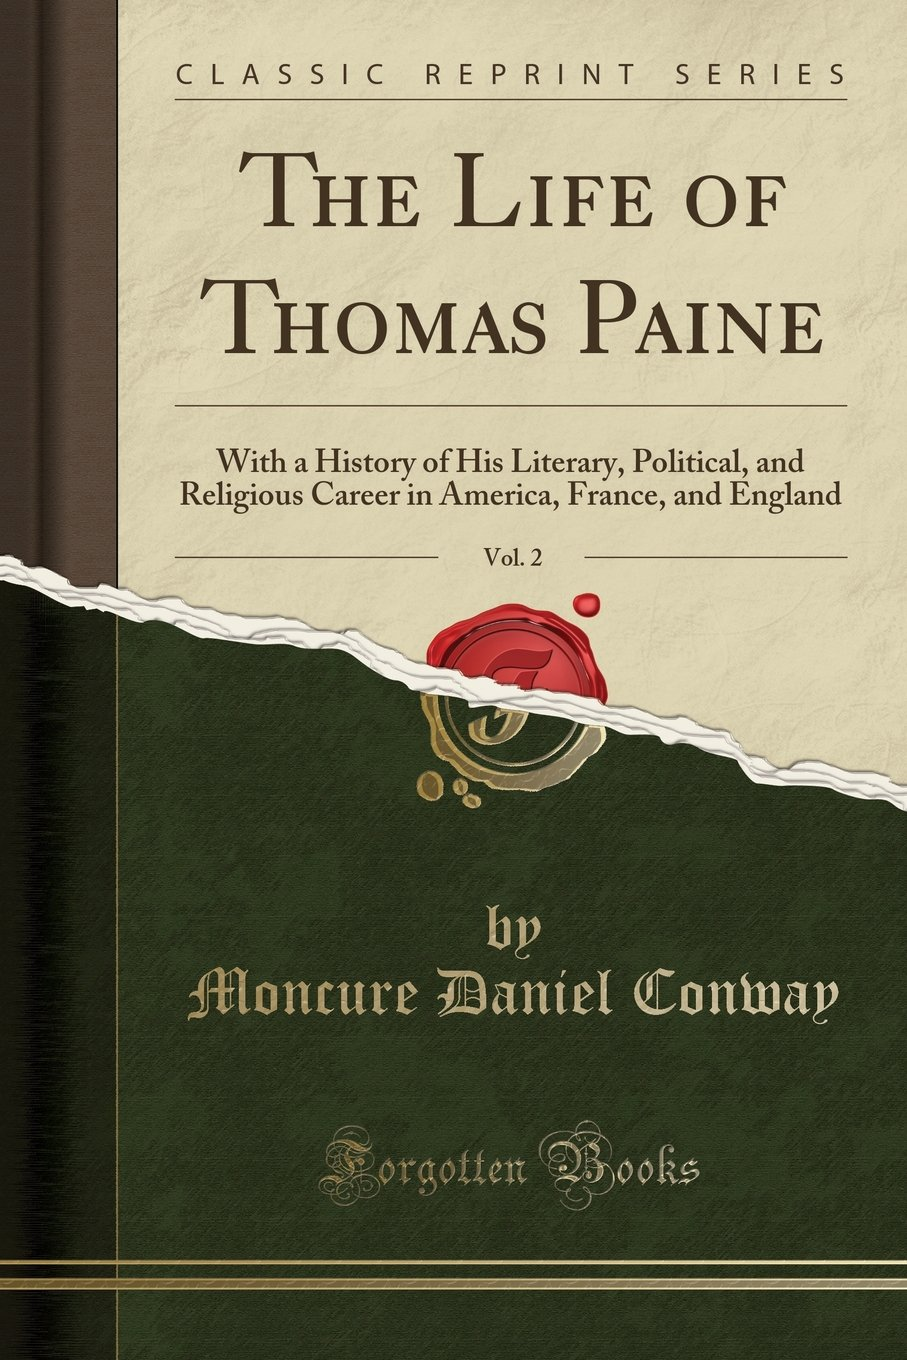 The Life of Thomas Paine, Vol. 2: With a History of His Literary, Political, and Religious Career in America, France, and England (Classic Reprint) pdf